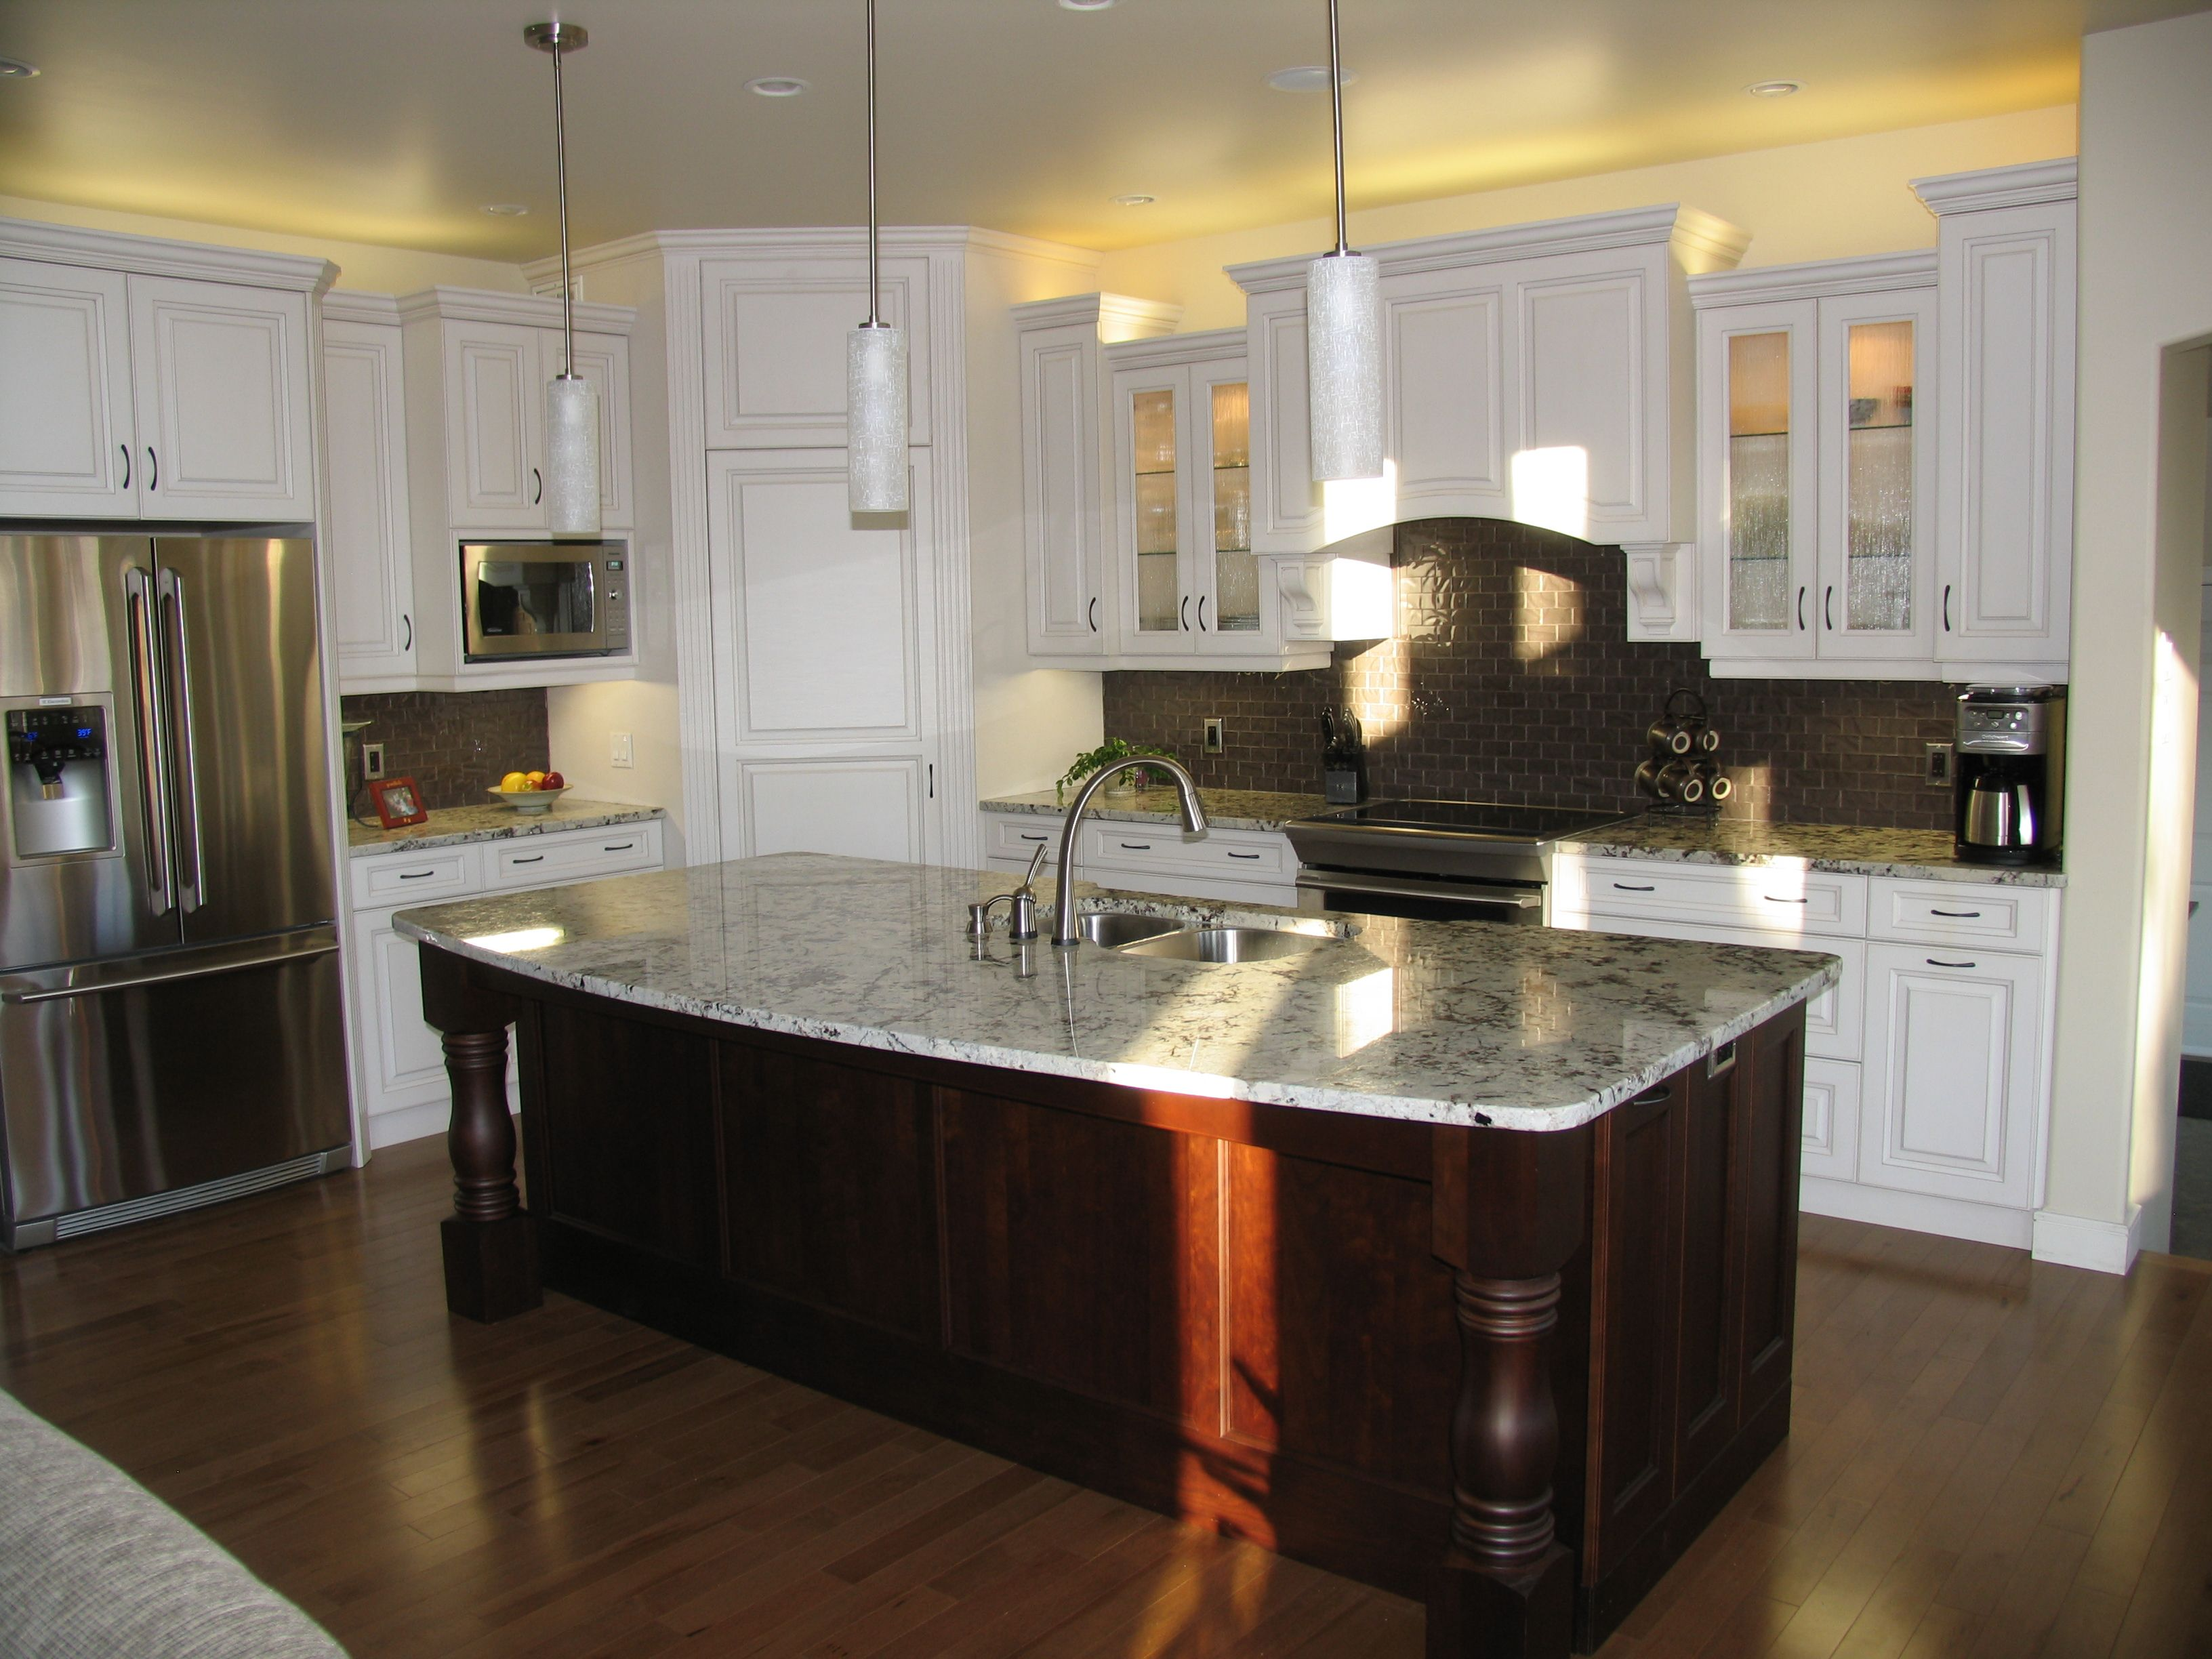 Kitchen Cabinets Islands kitchen cabinets: maple - arctic white, island cabinets: cherry